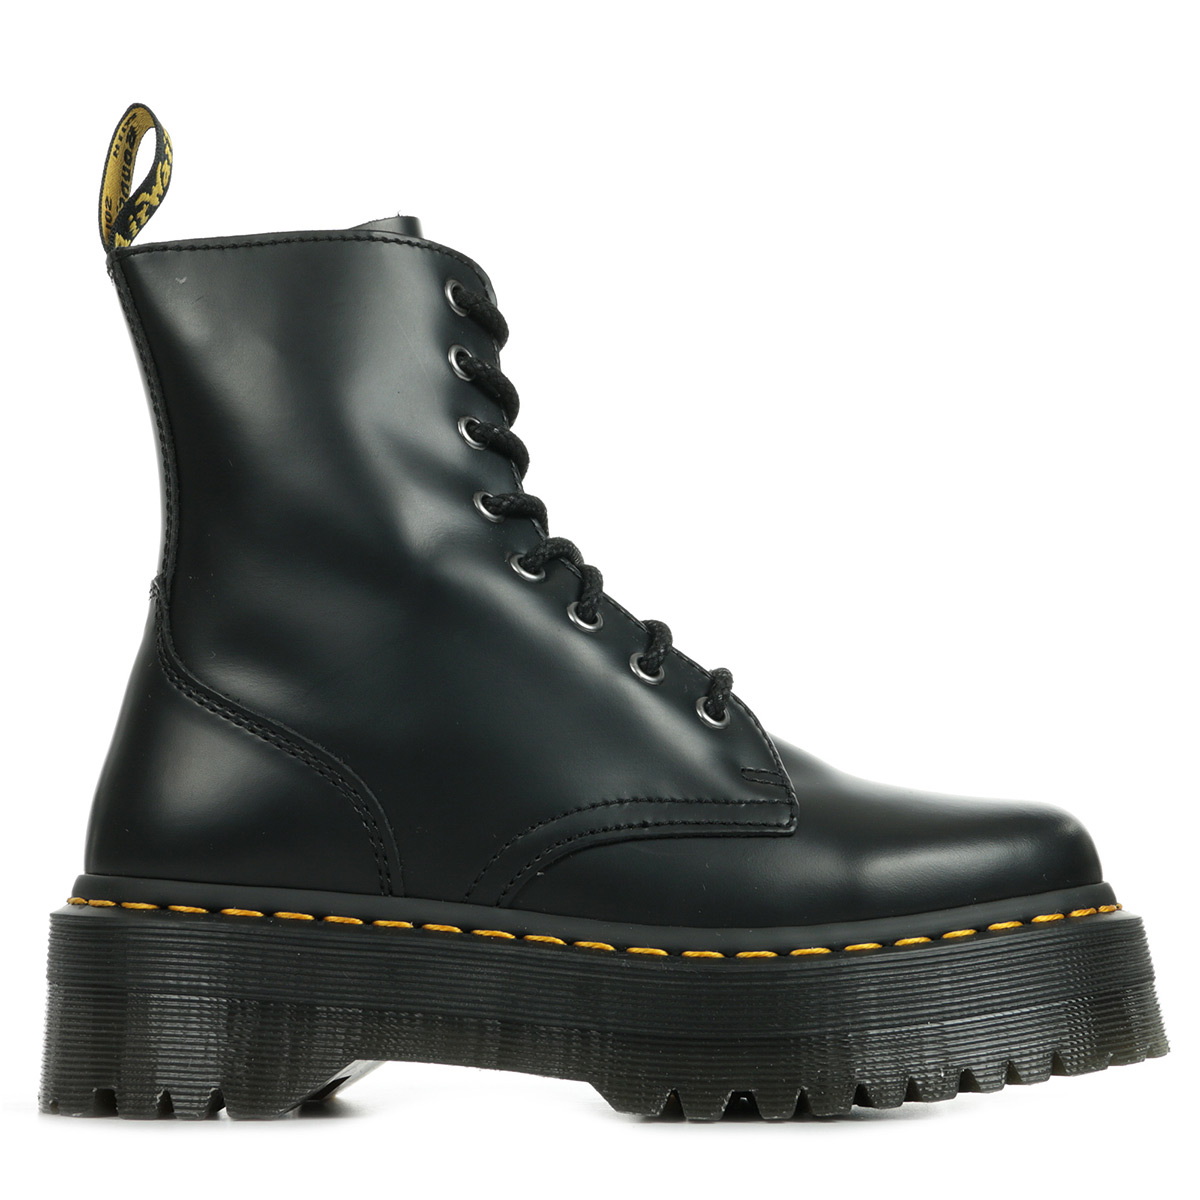 Vente Achat Cher Baskets Chaussures Pas DrMartens vN0m8nOw